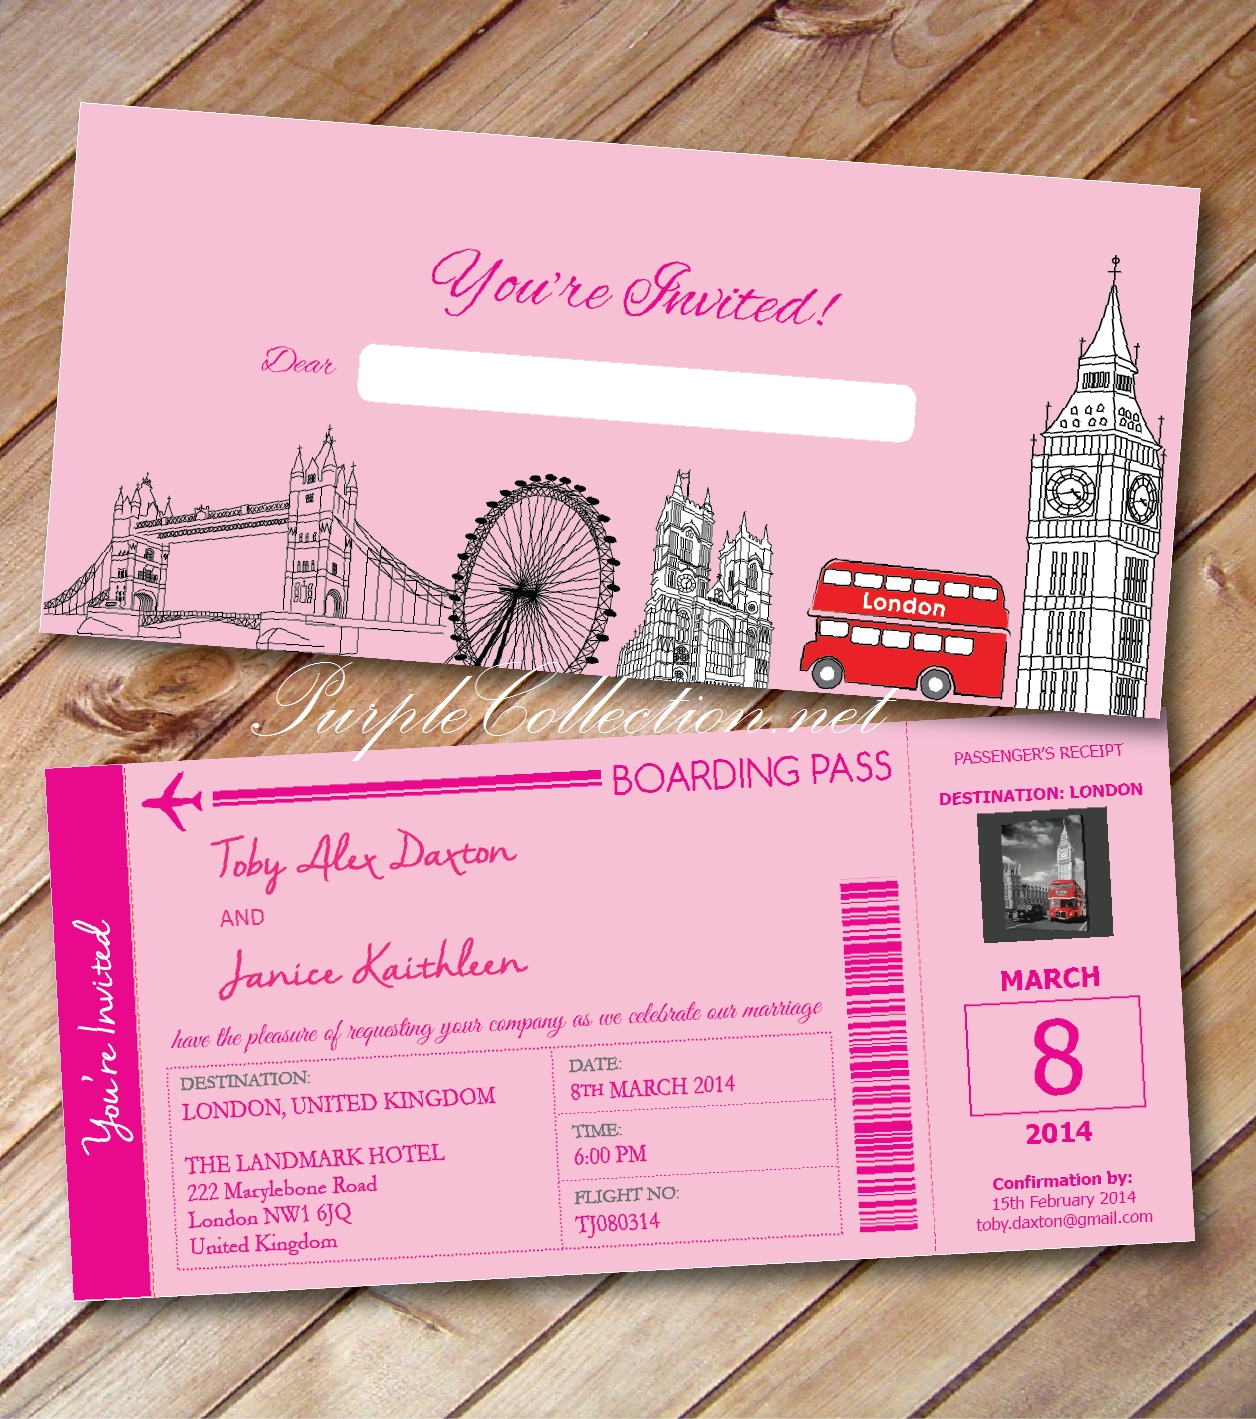 london, united kingdom, wedding card, invitation, marriage, modern, personalised, personalized, custom made, design, unique, special, pink, red bus, big ben, london bridge, boarding pass, travel, passport, malaysia, kuala lumpur, online, purchase, buy, sell, portfolio, handmade, hand crafted, art card, cover, pearl card, envelope